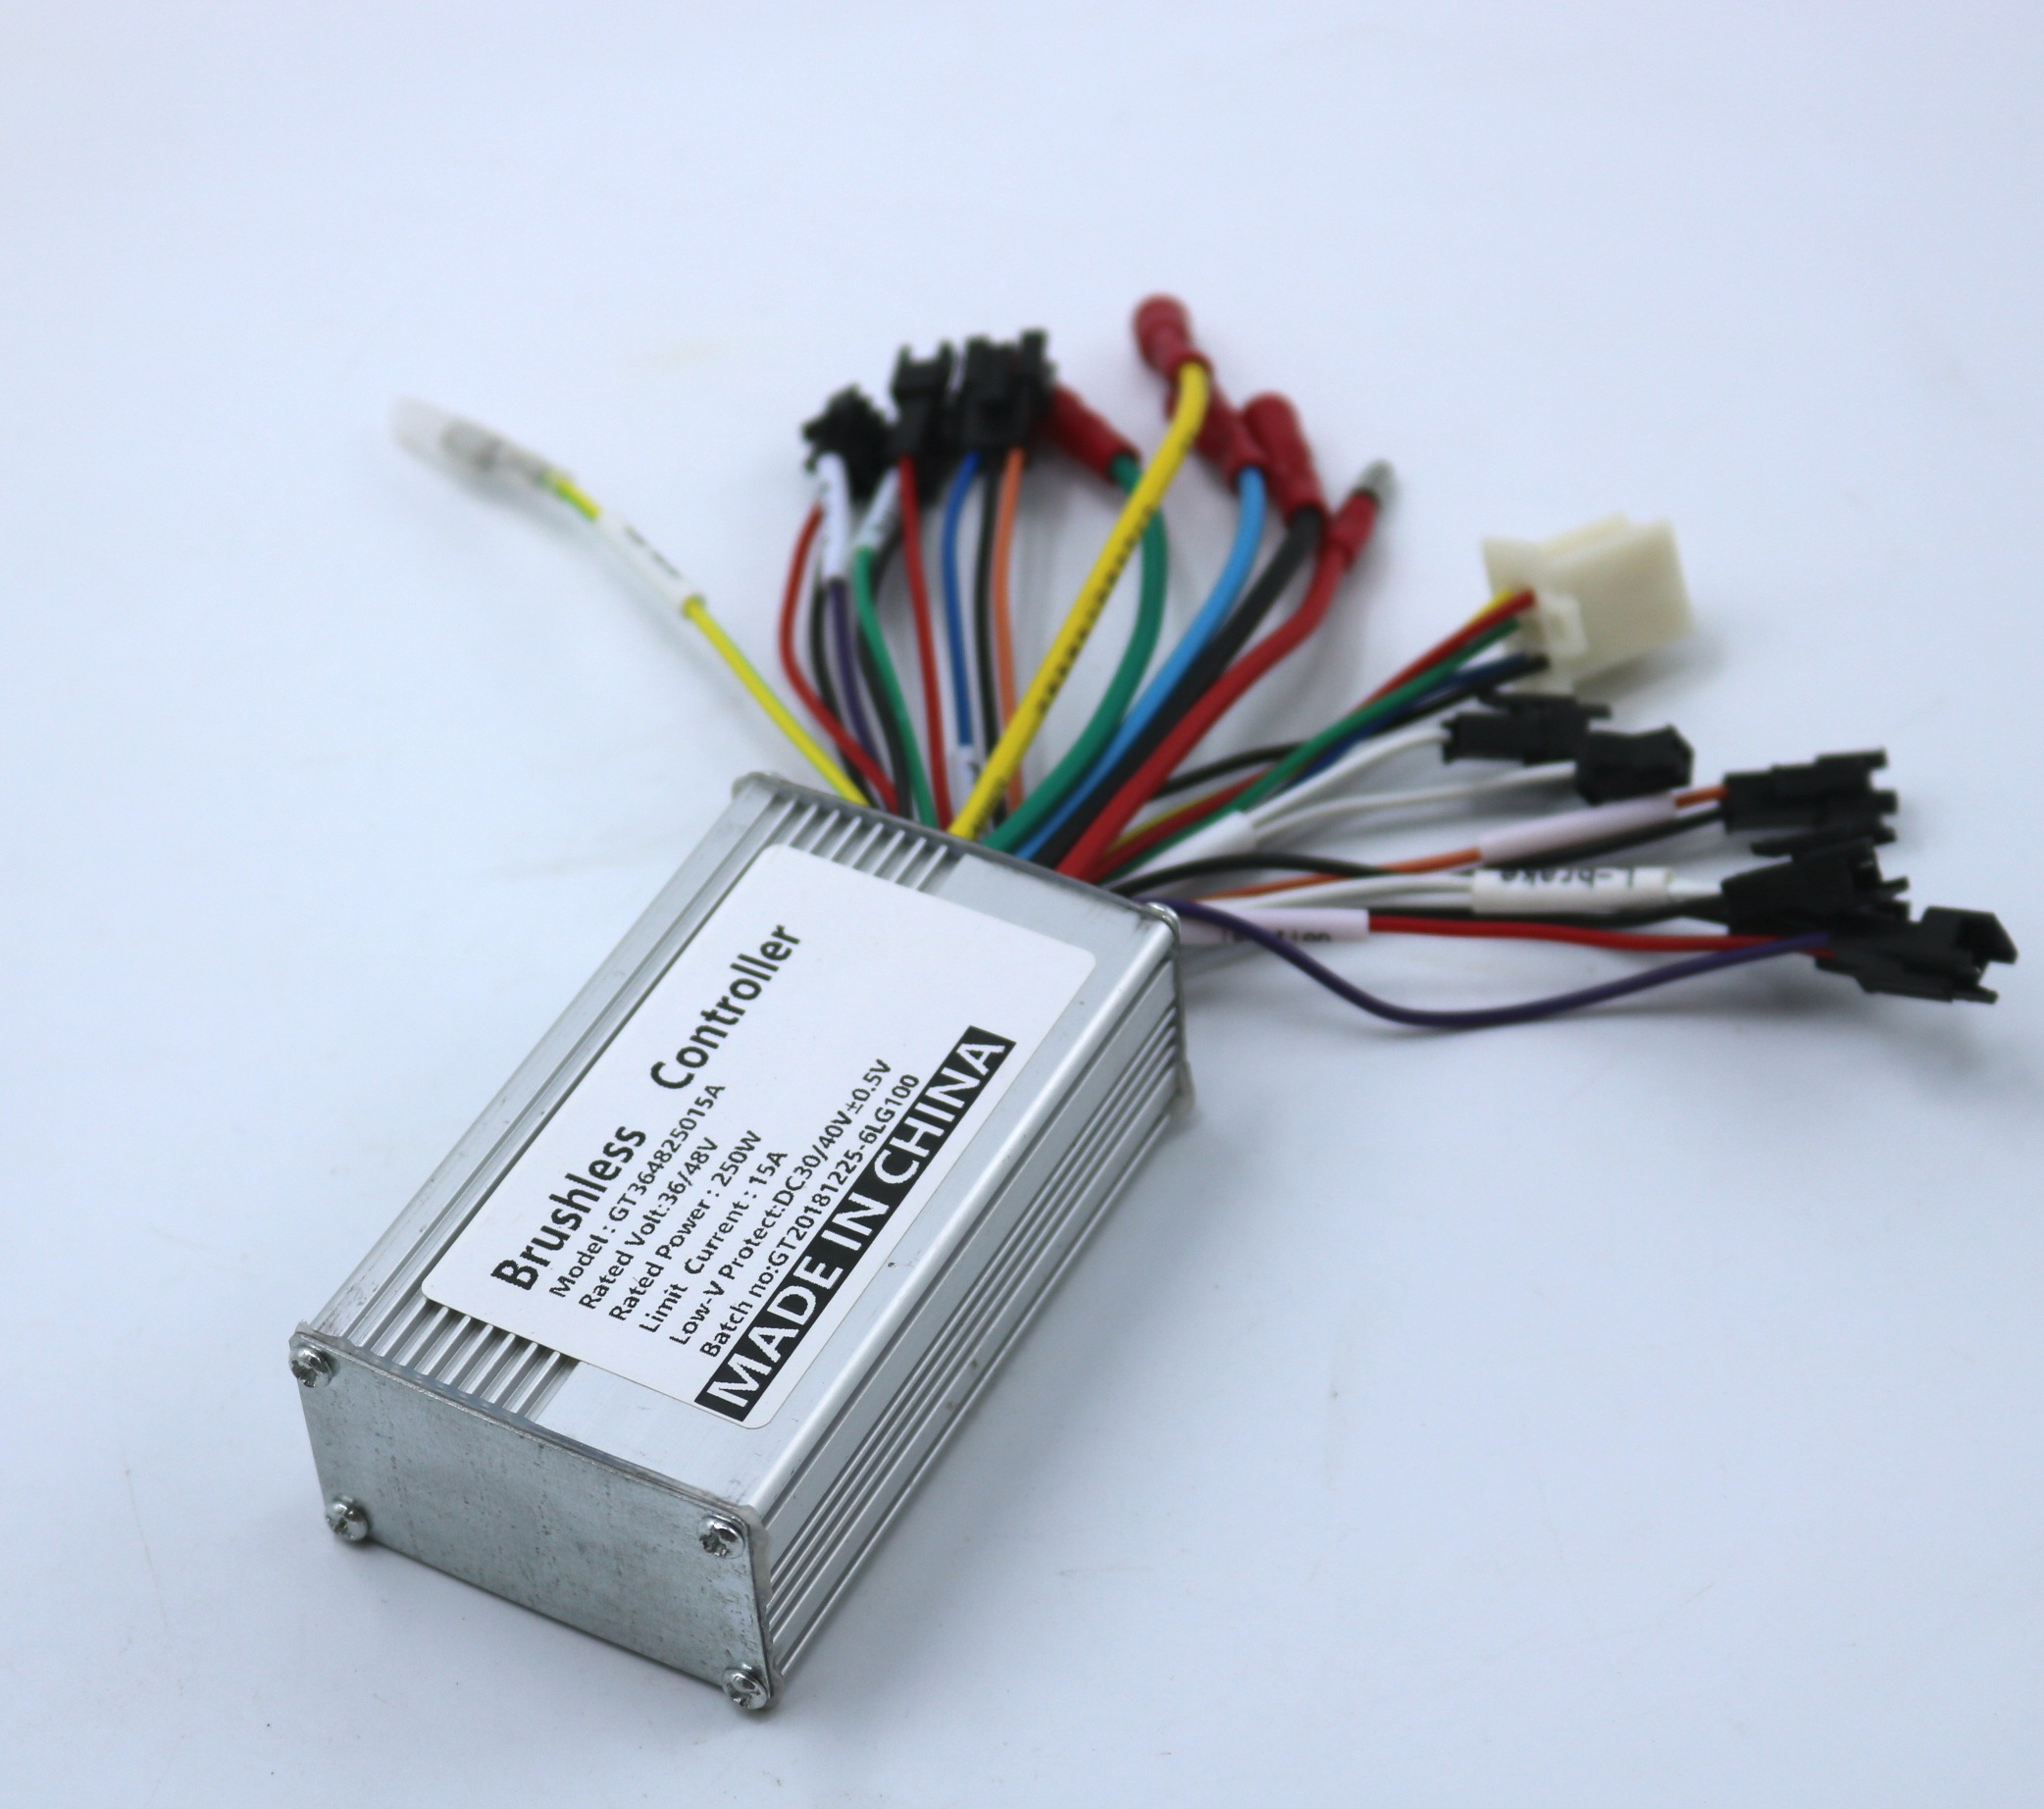 GREENTIME High Quality 36V 250W E-bike Brushless Motor Controller BLDC Motor Driver